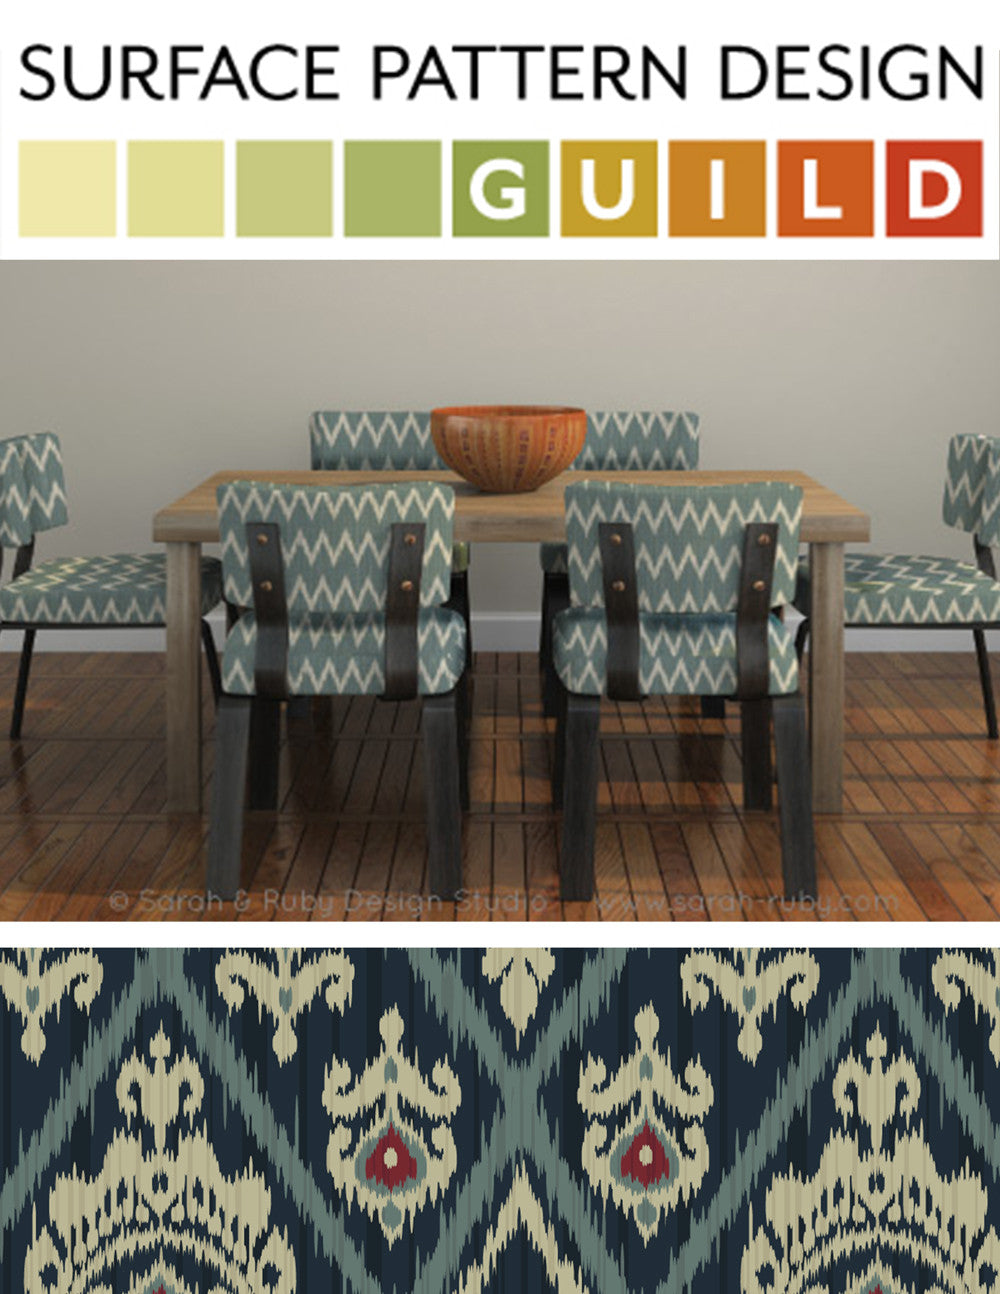 Modern ikat design custom made for fabric by Sarah & Ruby